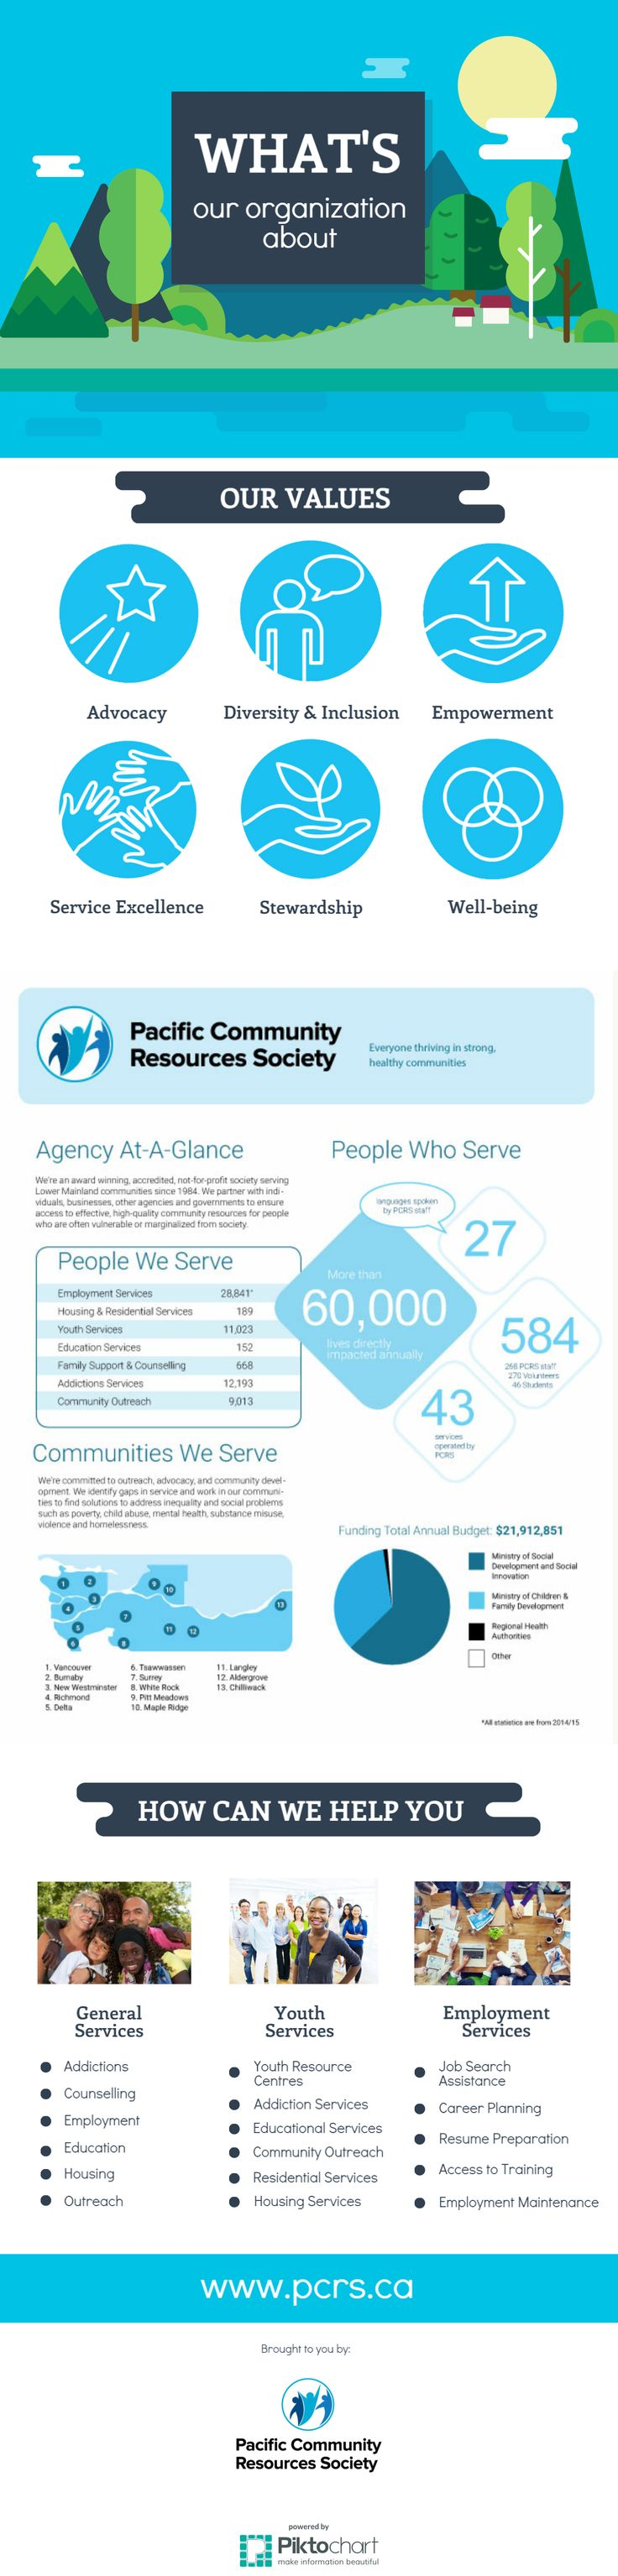 Want to know more about us? Check out this infographic.